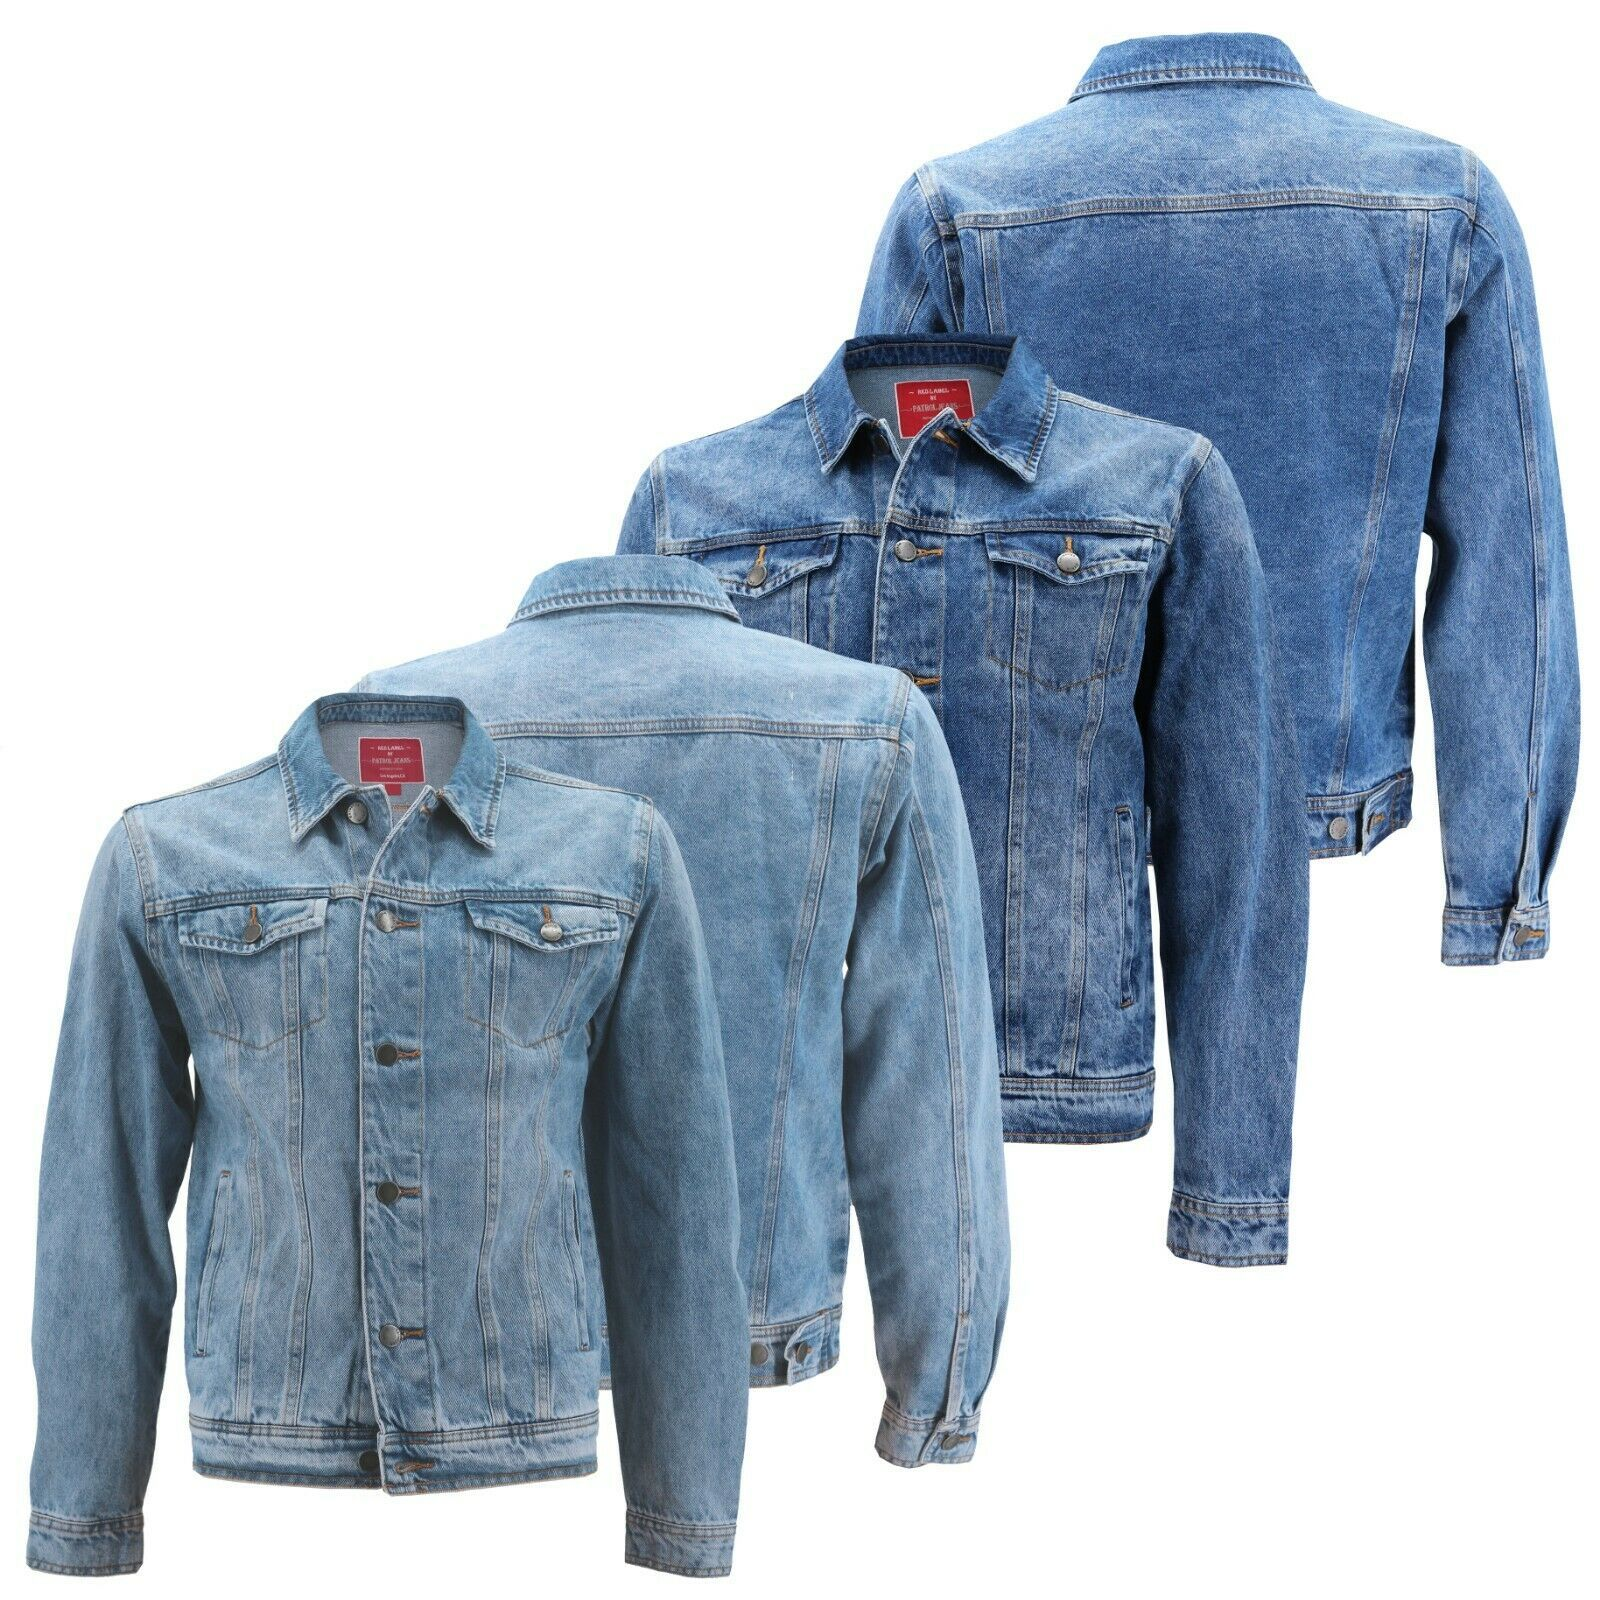 Red Label Men's Premium Casual Faded Denim Jean Button Up Cotton Slim Fit Jacket